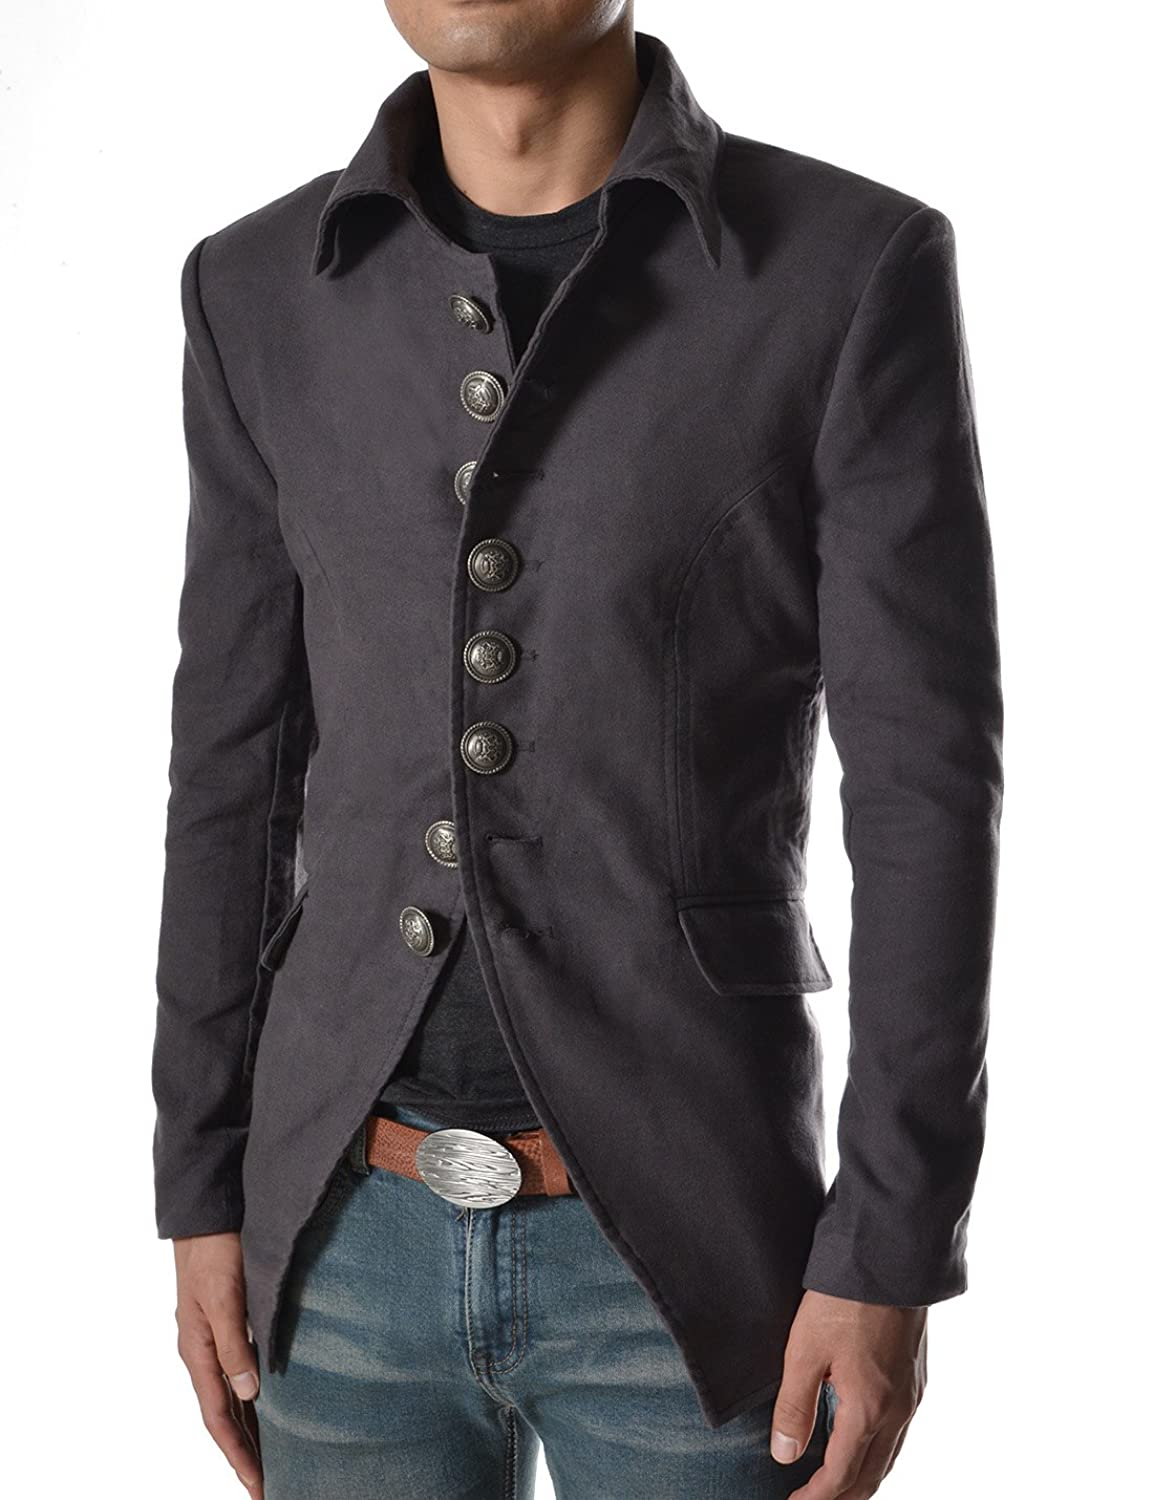 Men's Steampunk Jackets, Coats & Suits 737 THELEES Mens Luxury UNIQUE Style Slim fit 8 Button Front Blazer Jacket $59.50 AT vintagedancer.com